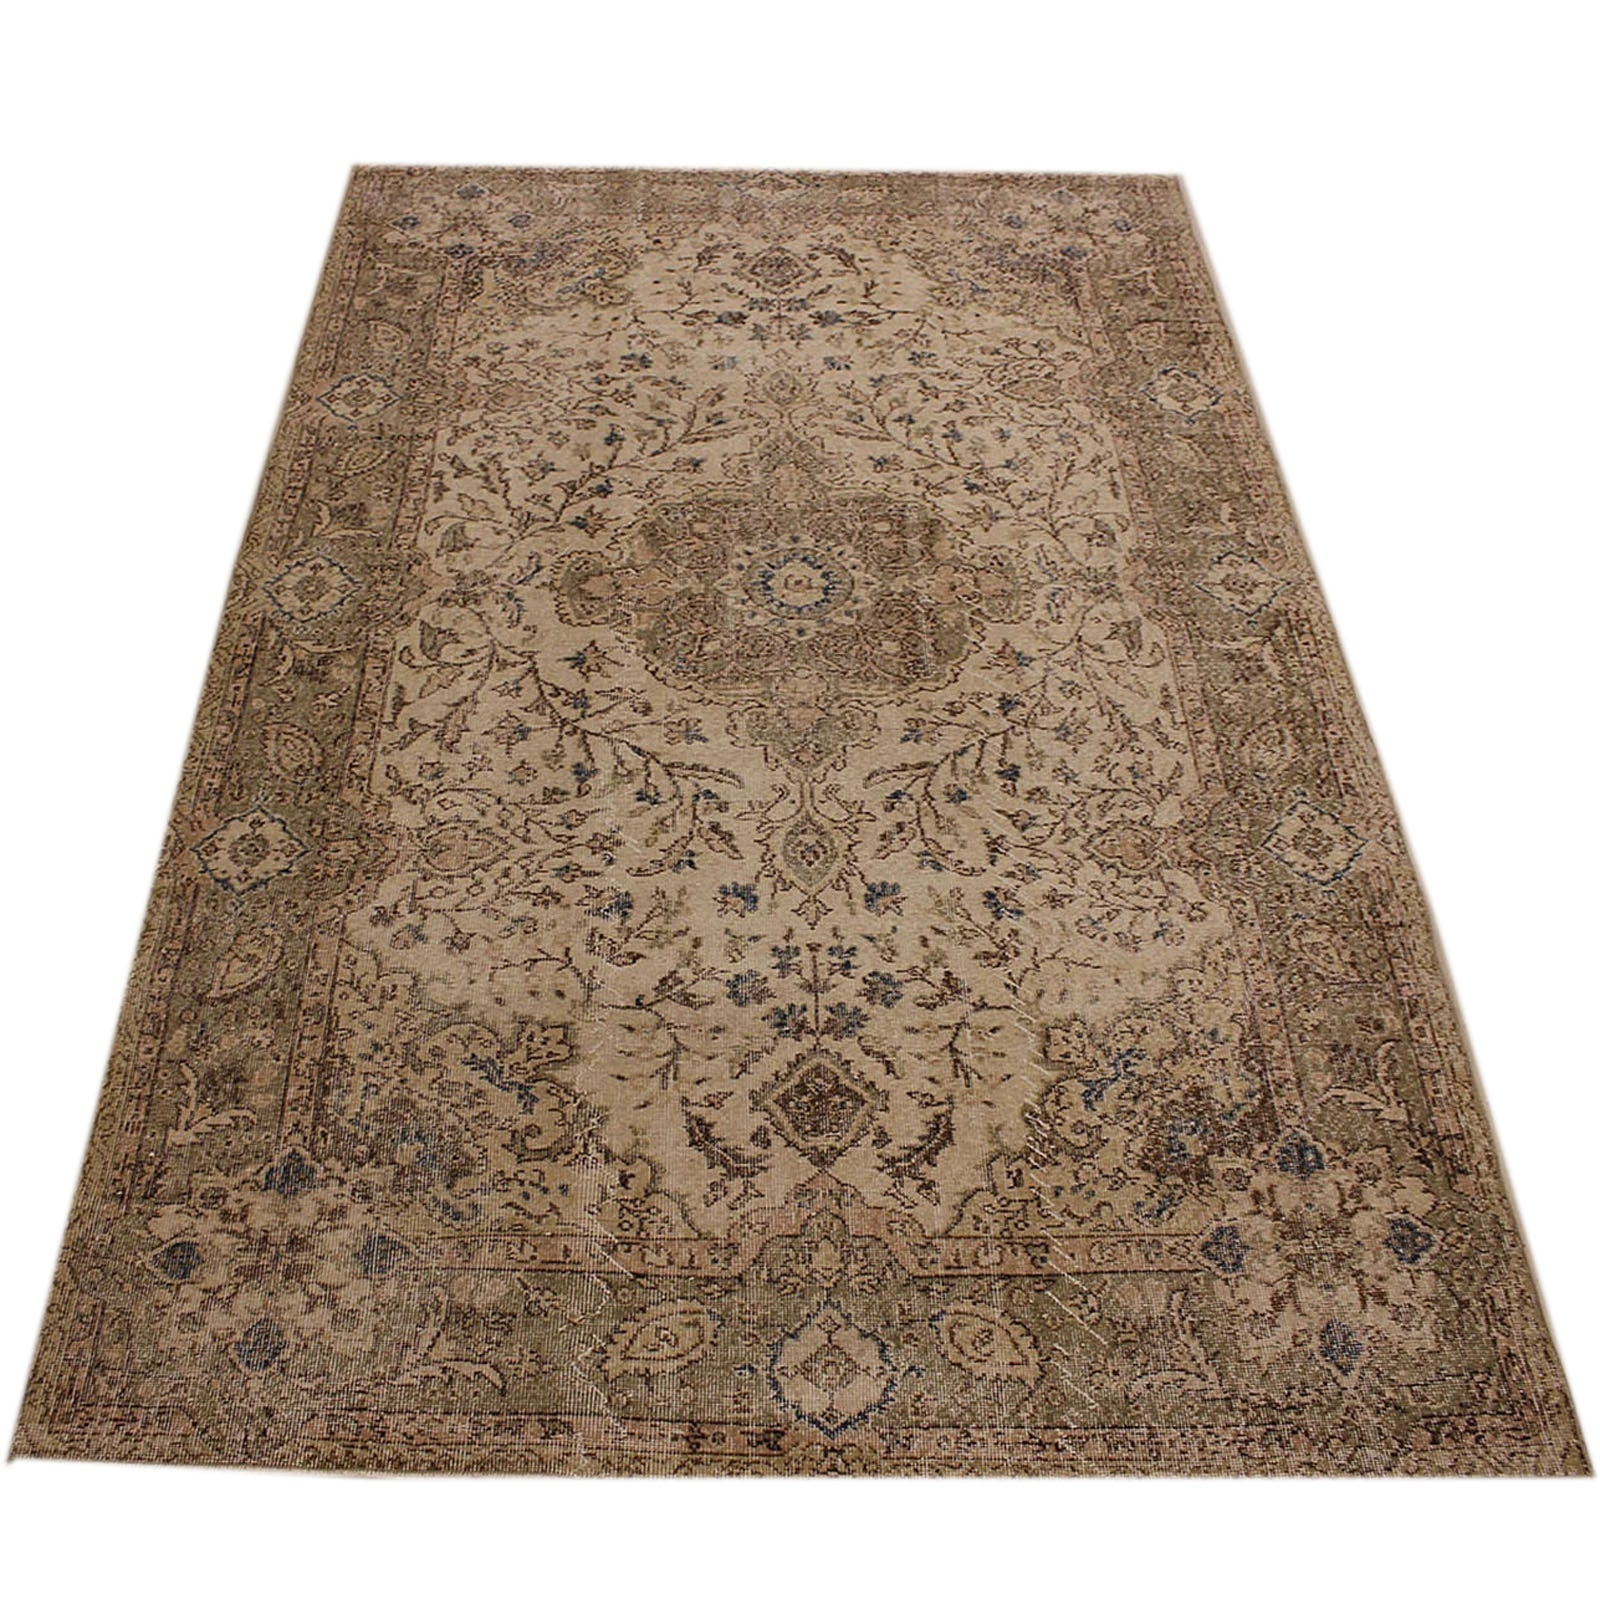 Hali 181X288 CMBursa Handmade over dyed rug 2314 -  181*288 سجاده بورصة صناعة يدوية على بساط مصبوغ - Shop Online Furniture and Home Decor Store in Dubai, UAE at ebarza